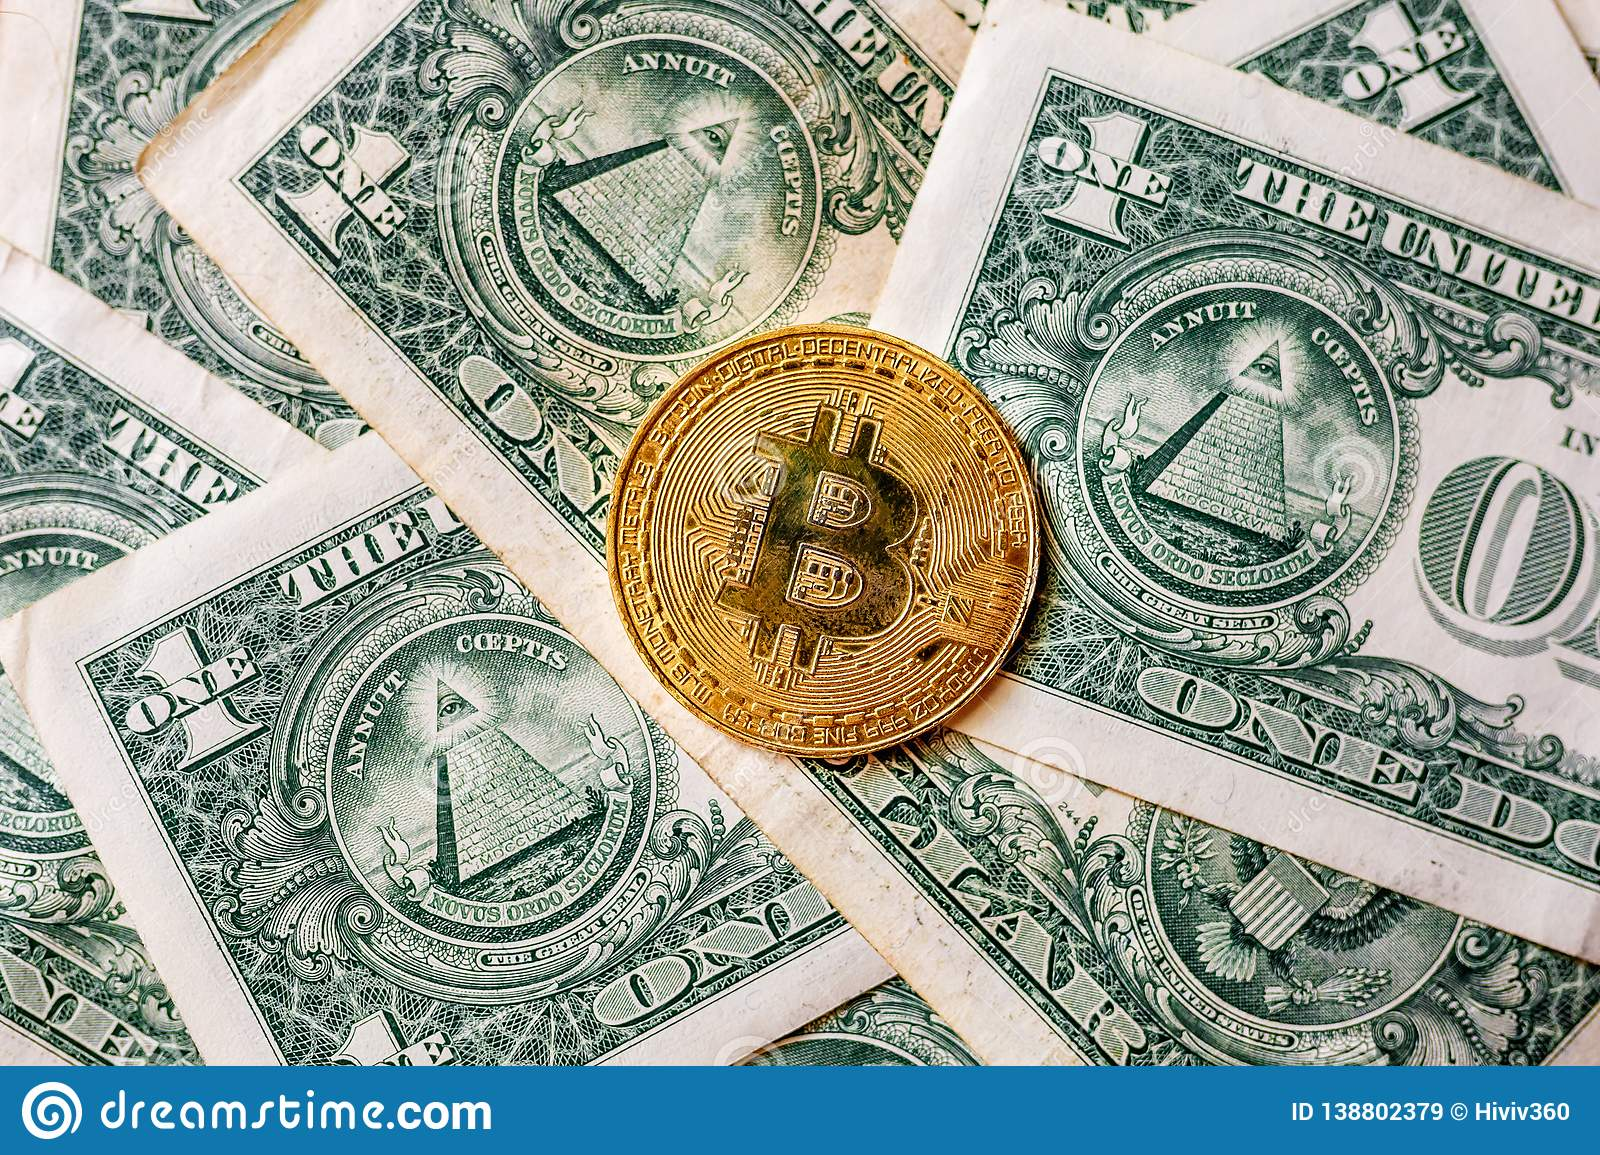 can cryptocurrency be exchanged for cash